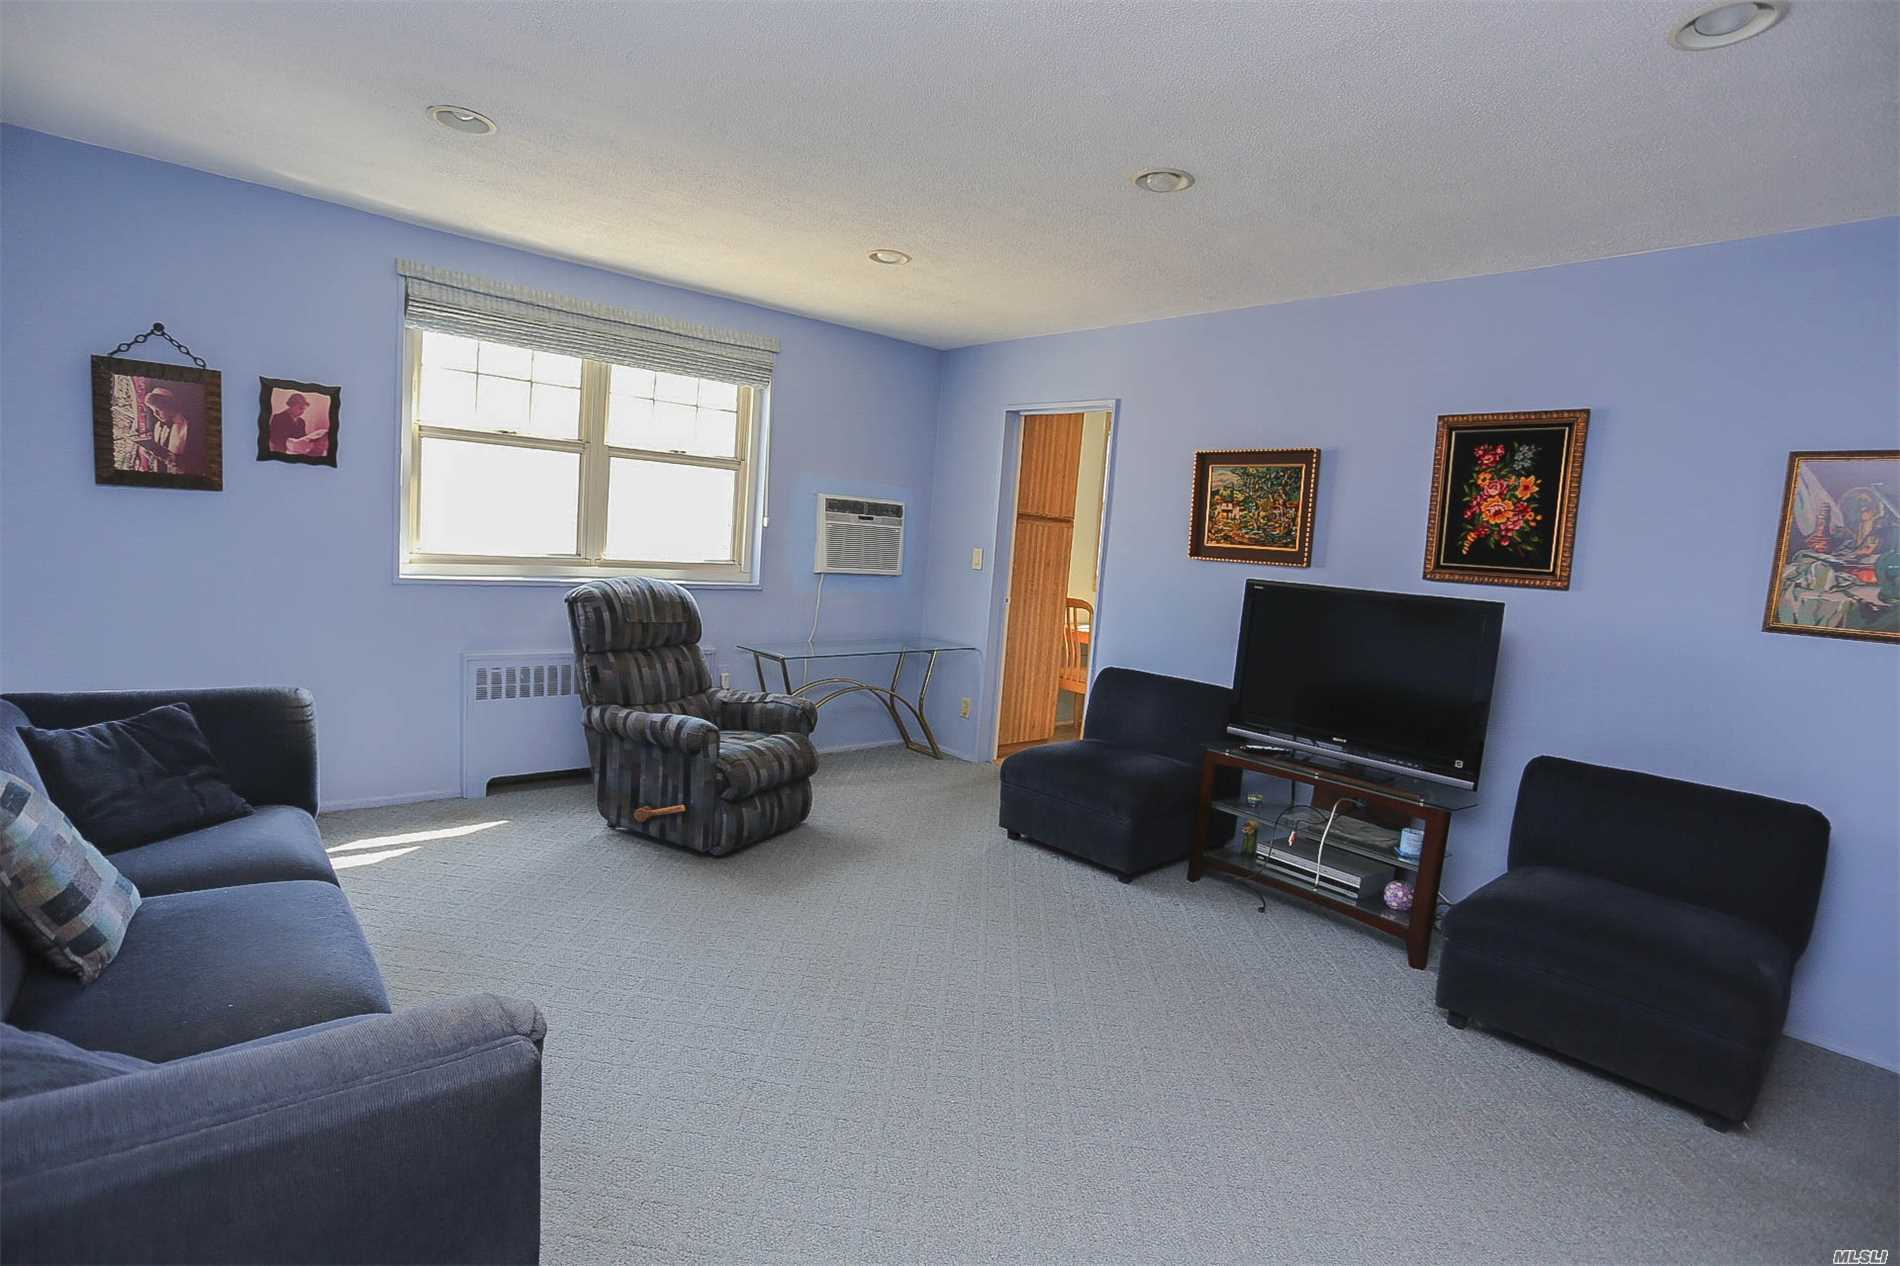 Full 2 Bedroom Co-Op,  Large Living Room With Huge Closets, Dining Area, Eat In Kitchen With Washing Machine/dryer in Unit. Home to School District 26. Beautiful well maintained Grounds with Several playgrounds and a splash park nearby. All utilities are included in Maintenance with surcharges per appliance added to the maintenance. Nearby bus transit QM5 , QM35, QM8, Q36, Q30